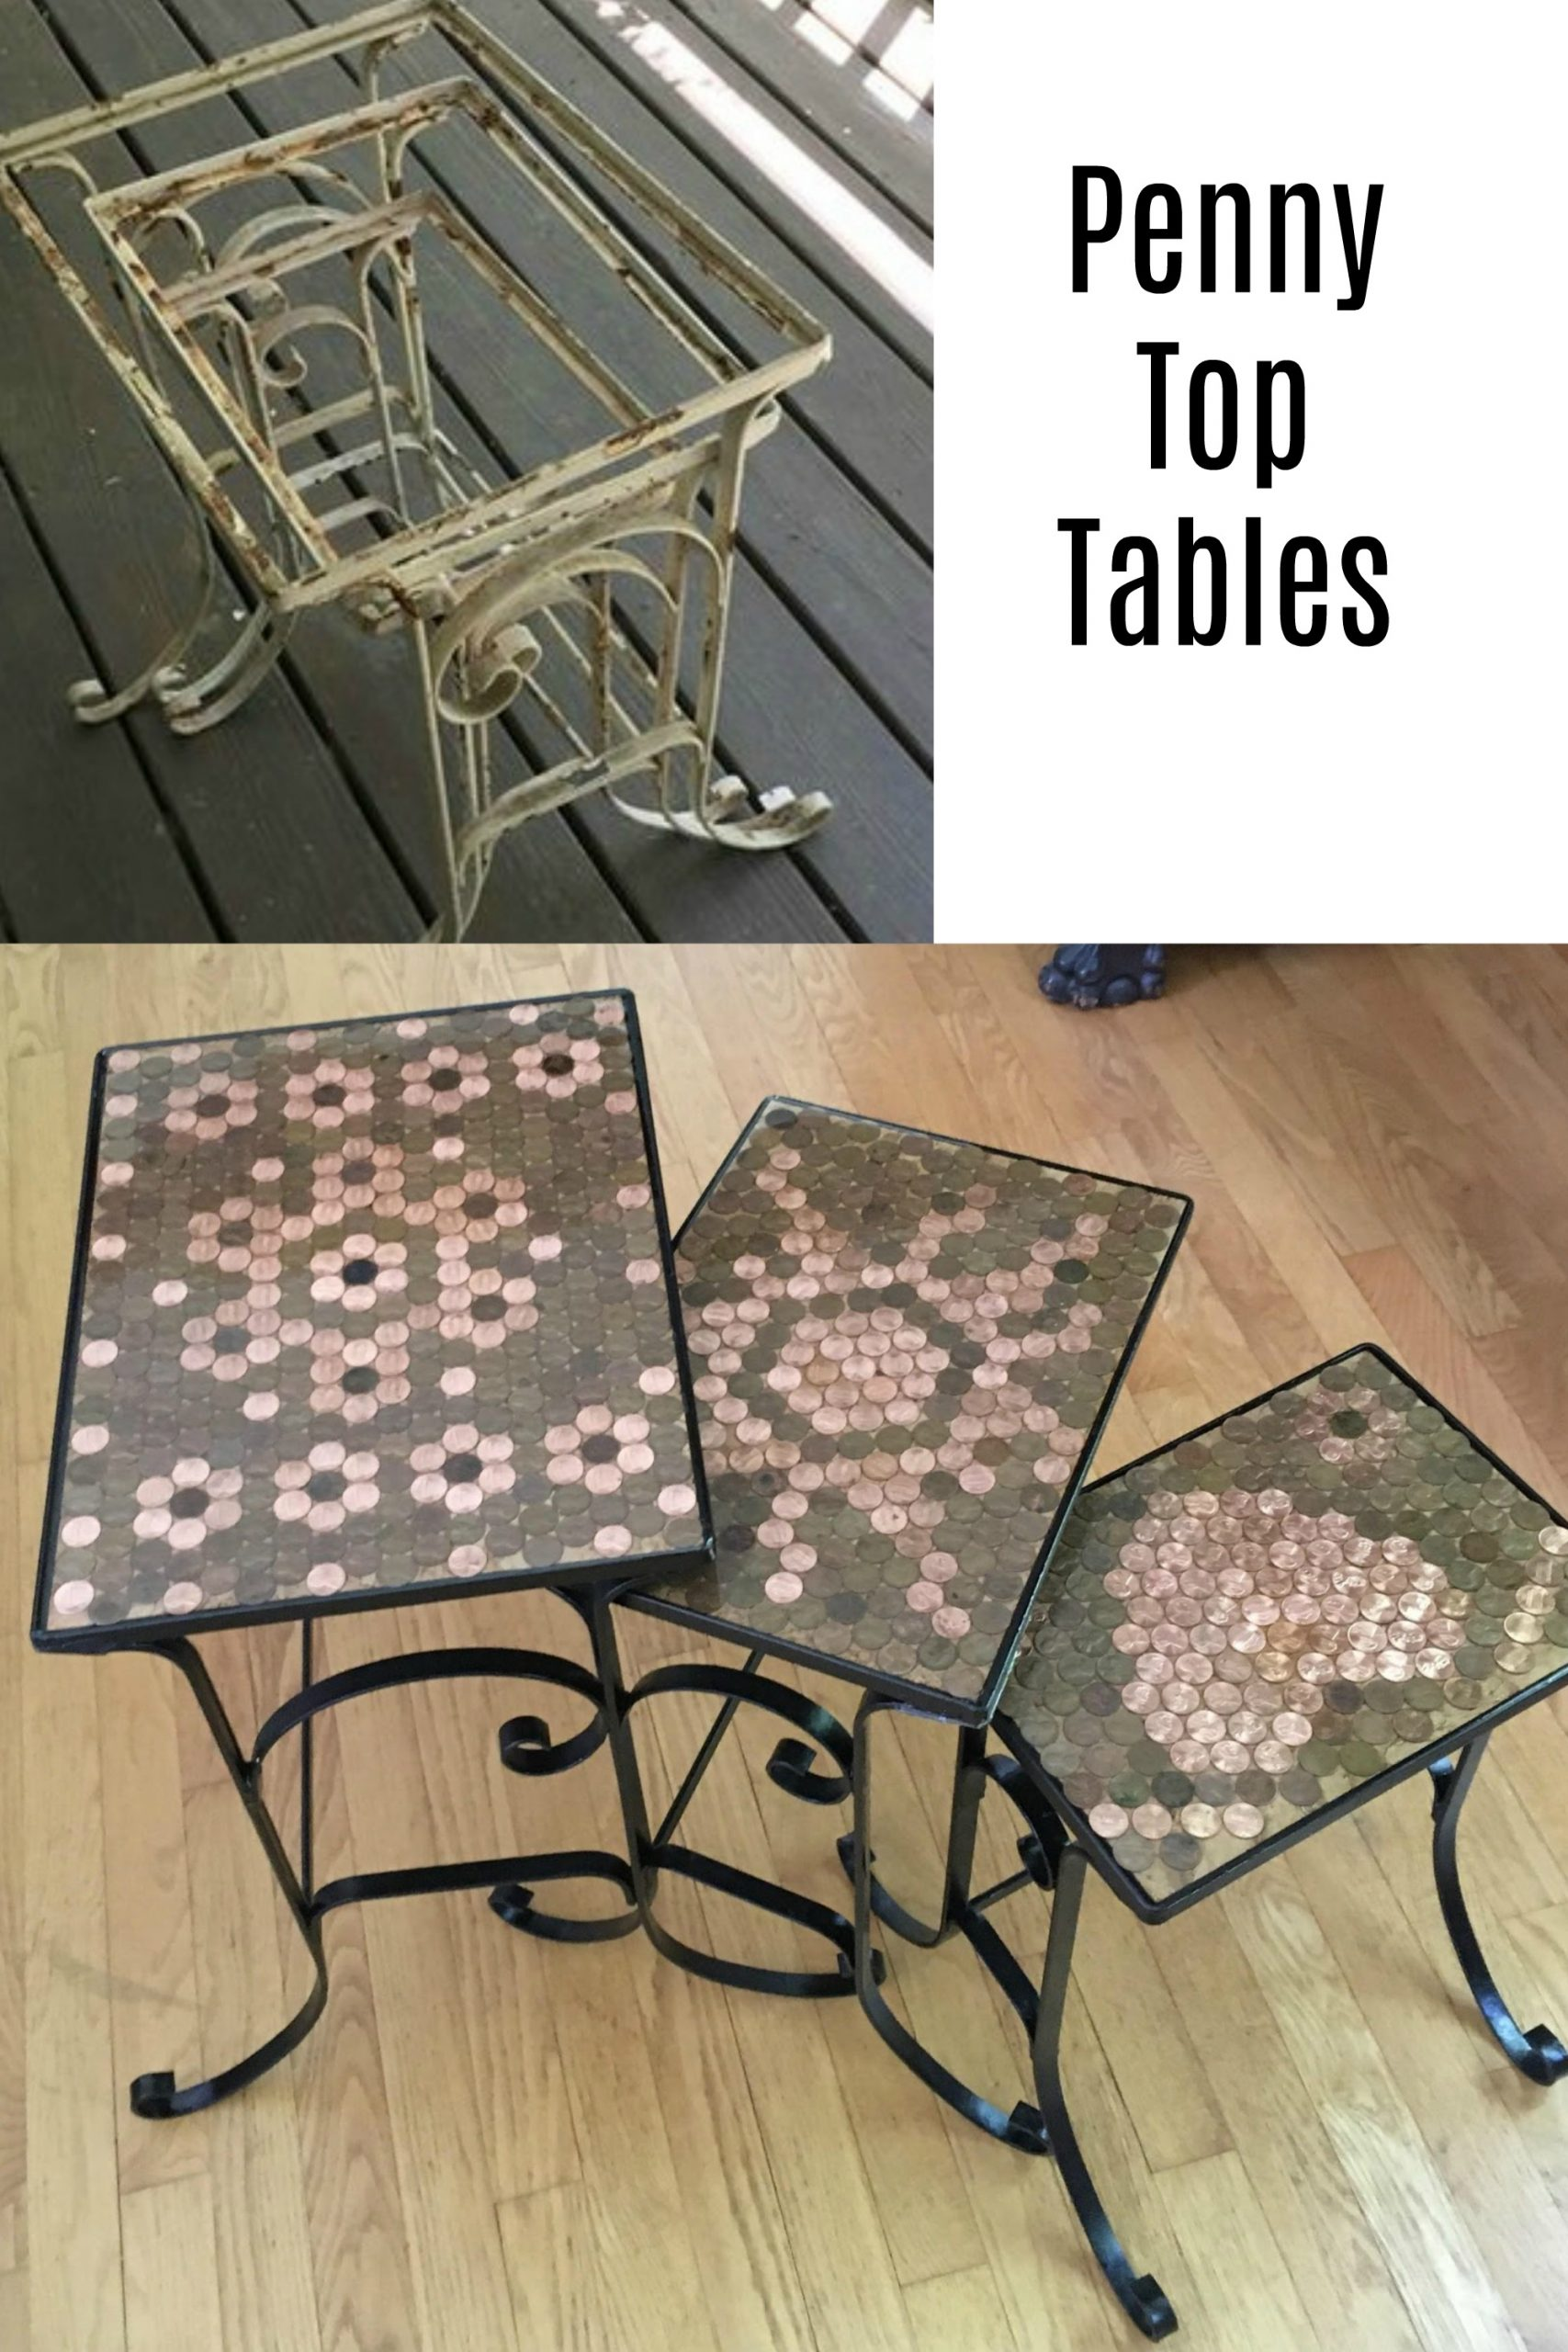 How to turn yard sale stacking metal tables into unique and fun penny top tables. Lots of tips so you can do this project. Maybe you already have the pennies? #repurposed #pennies #penny #table #project via @repurposedlife